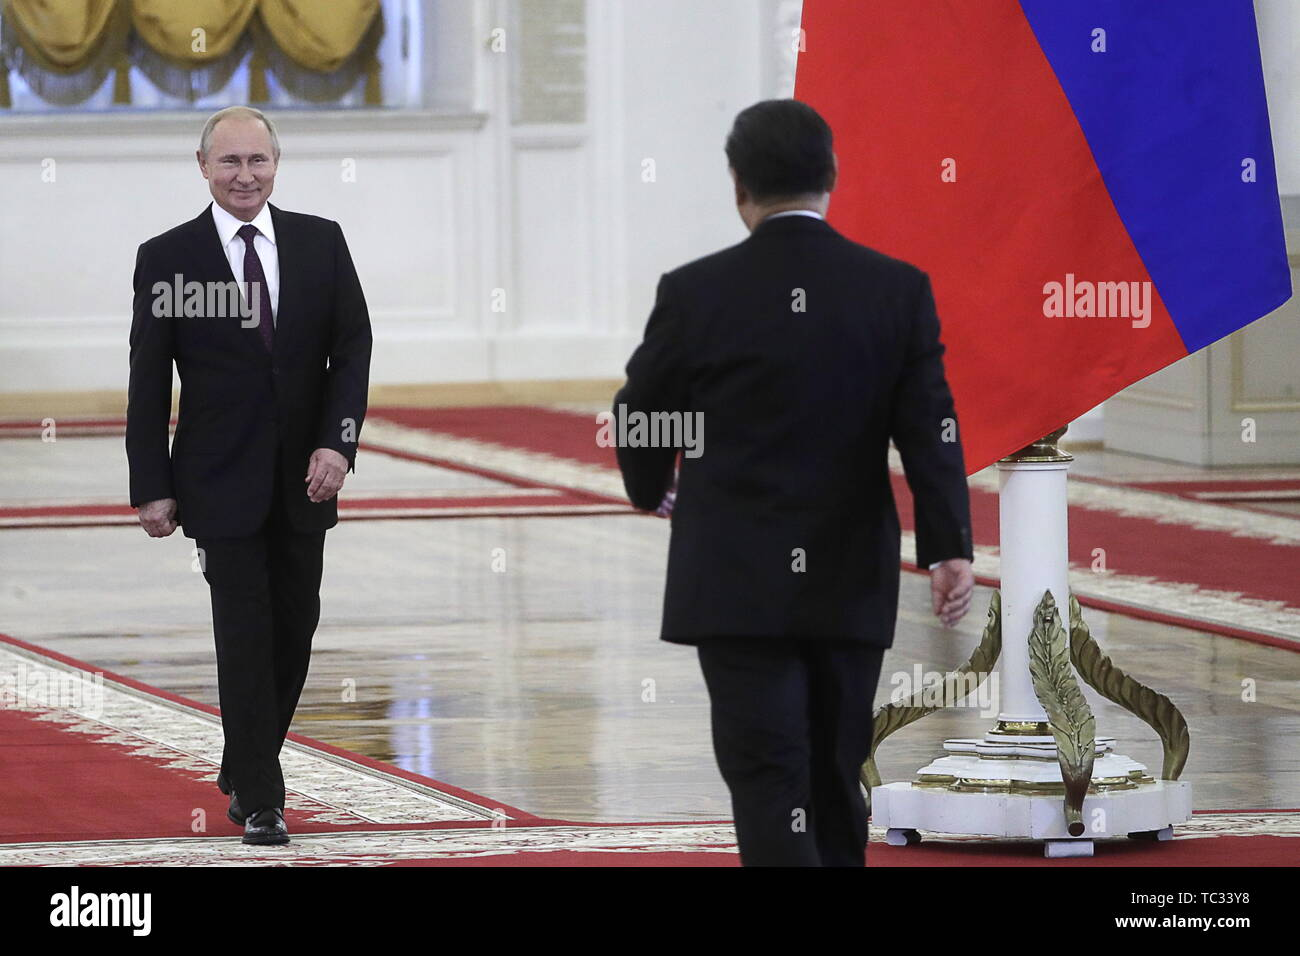 Moscow, Russia. 05th June, 2019. MOSCOW, RUSSIA - JUNE 5, 2019: Russia's President Vladimir Putin (L) and China's President Xi Jinping during a meeting in the Moscow Kremlin; the Chinese leader is on a three-day state visit to Russia. Mikhail Metzel/TASS Credit: ITAR-TASS News Agency/Alamy Live News - Stock Image